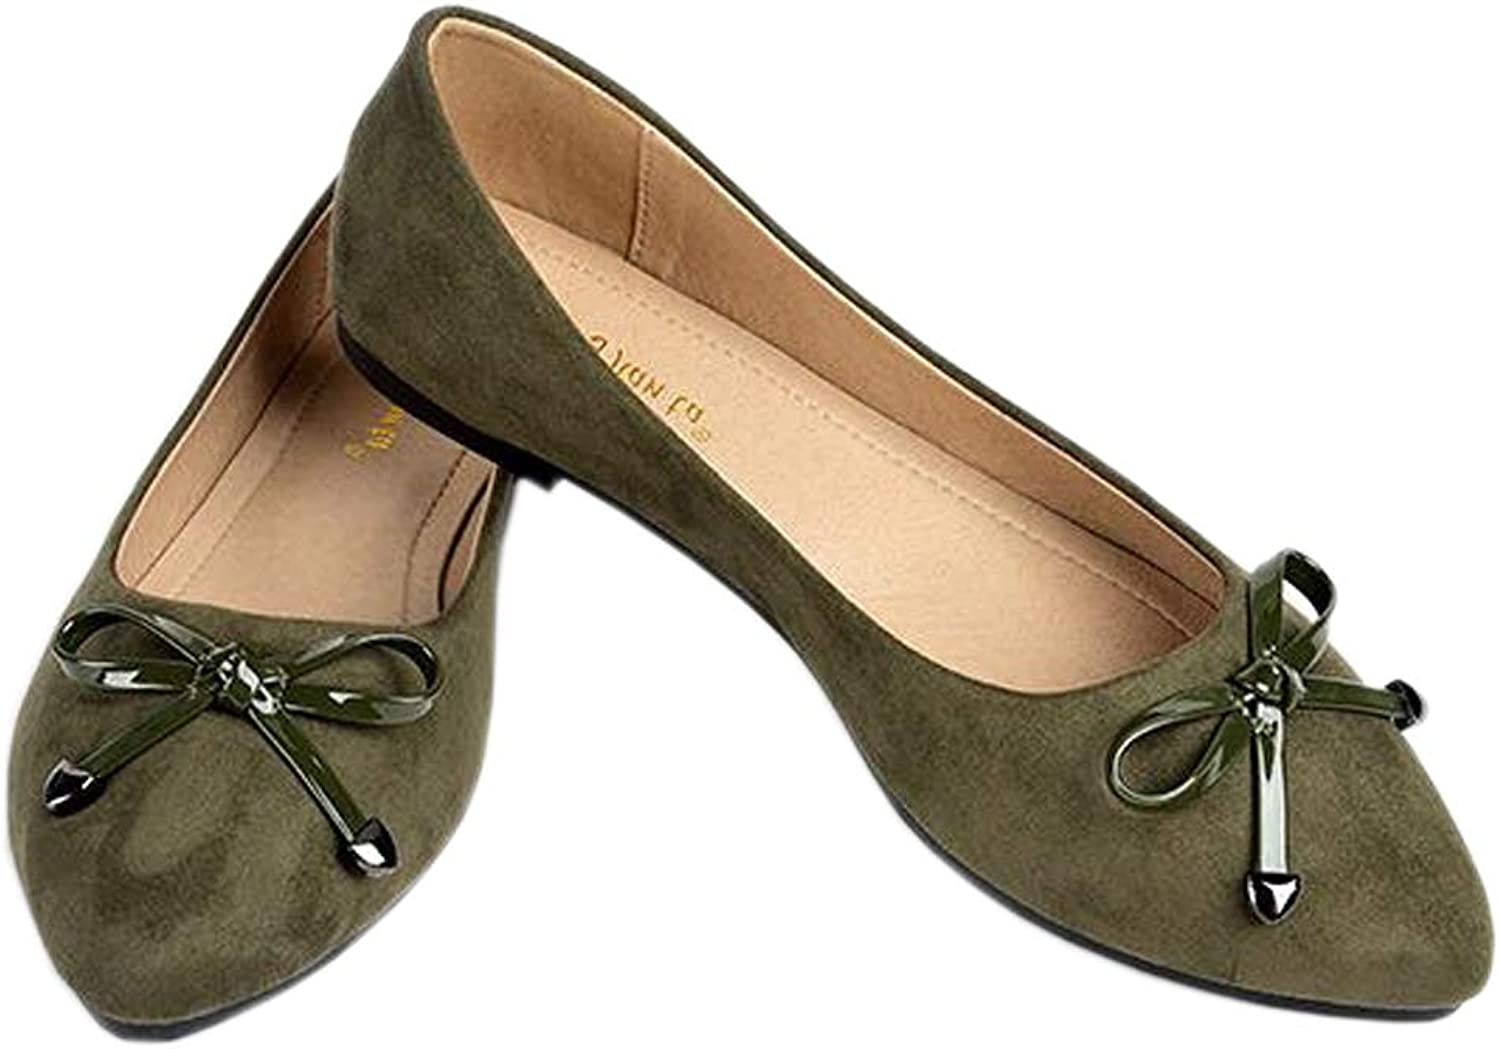 Pfpeng Women Bows Ballet Flats Casual Slip-on Faux Suede Pointed Toe Loafers shoes